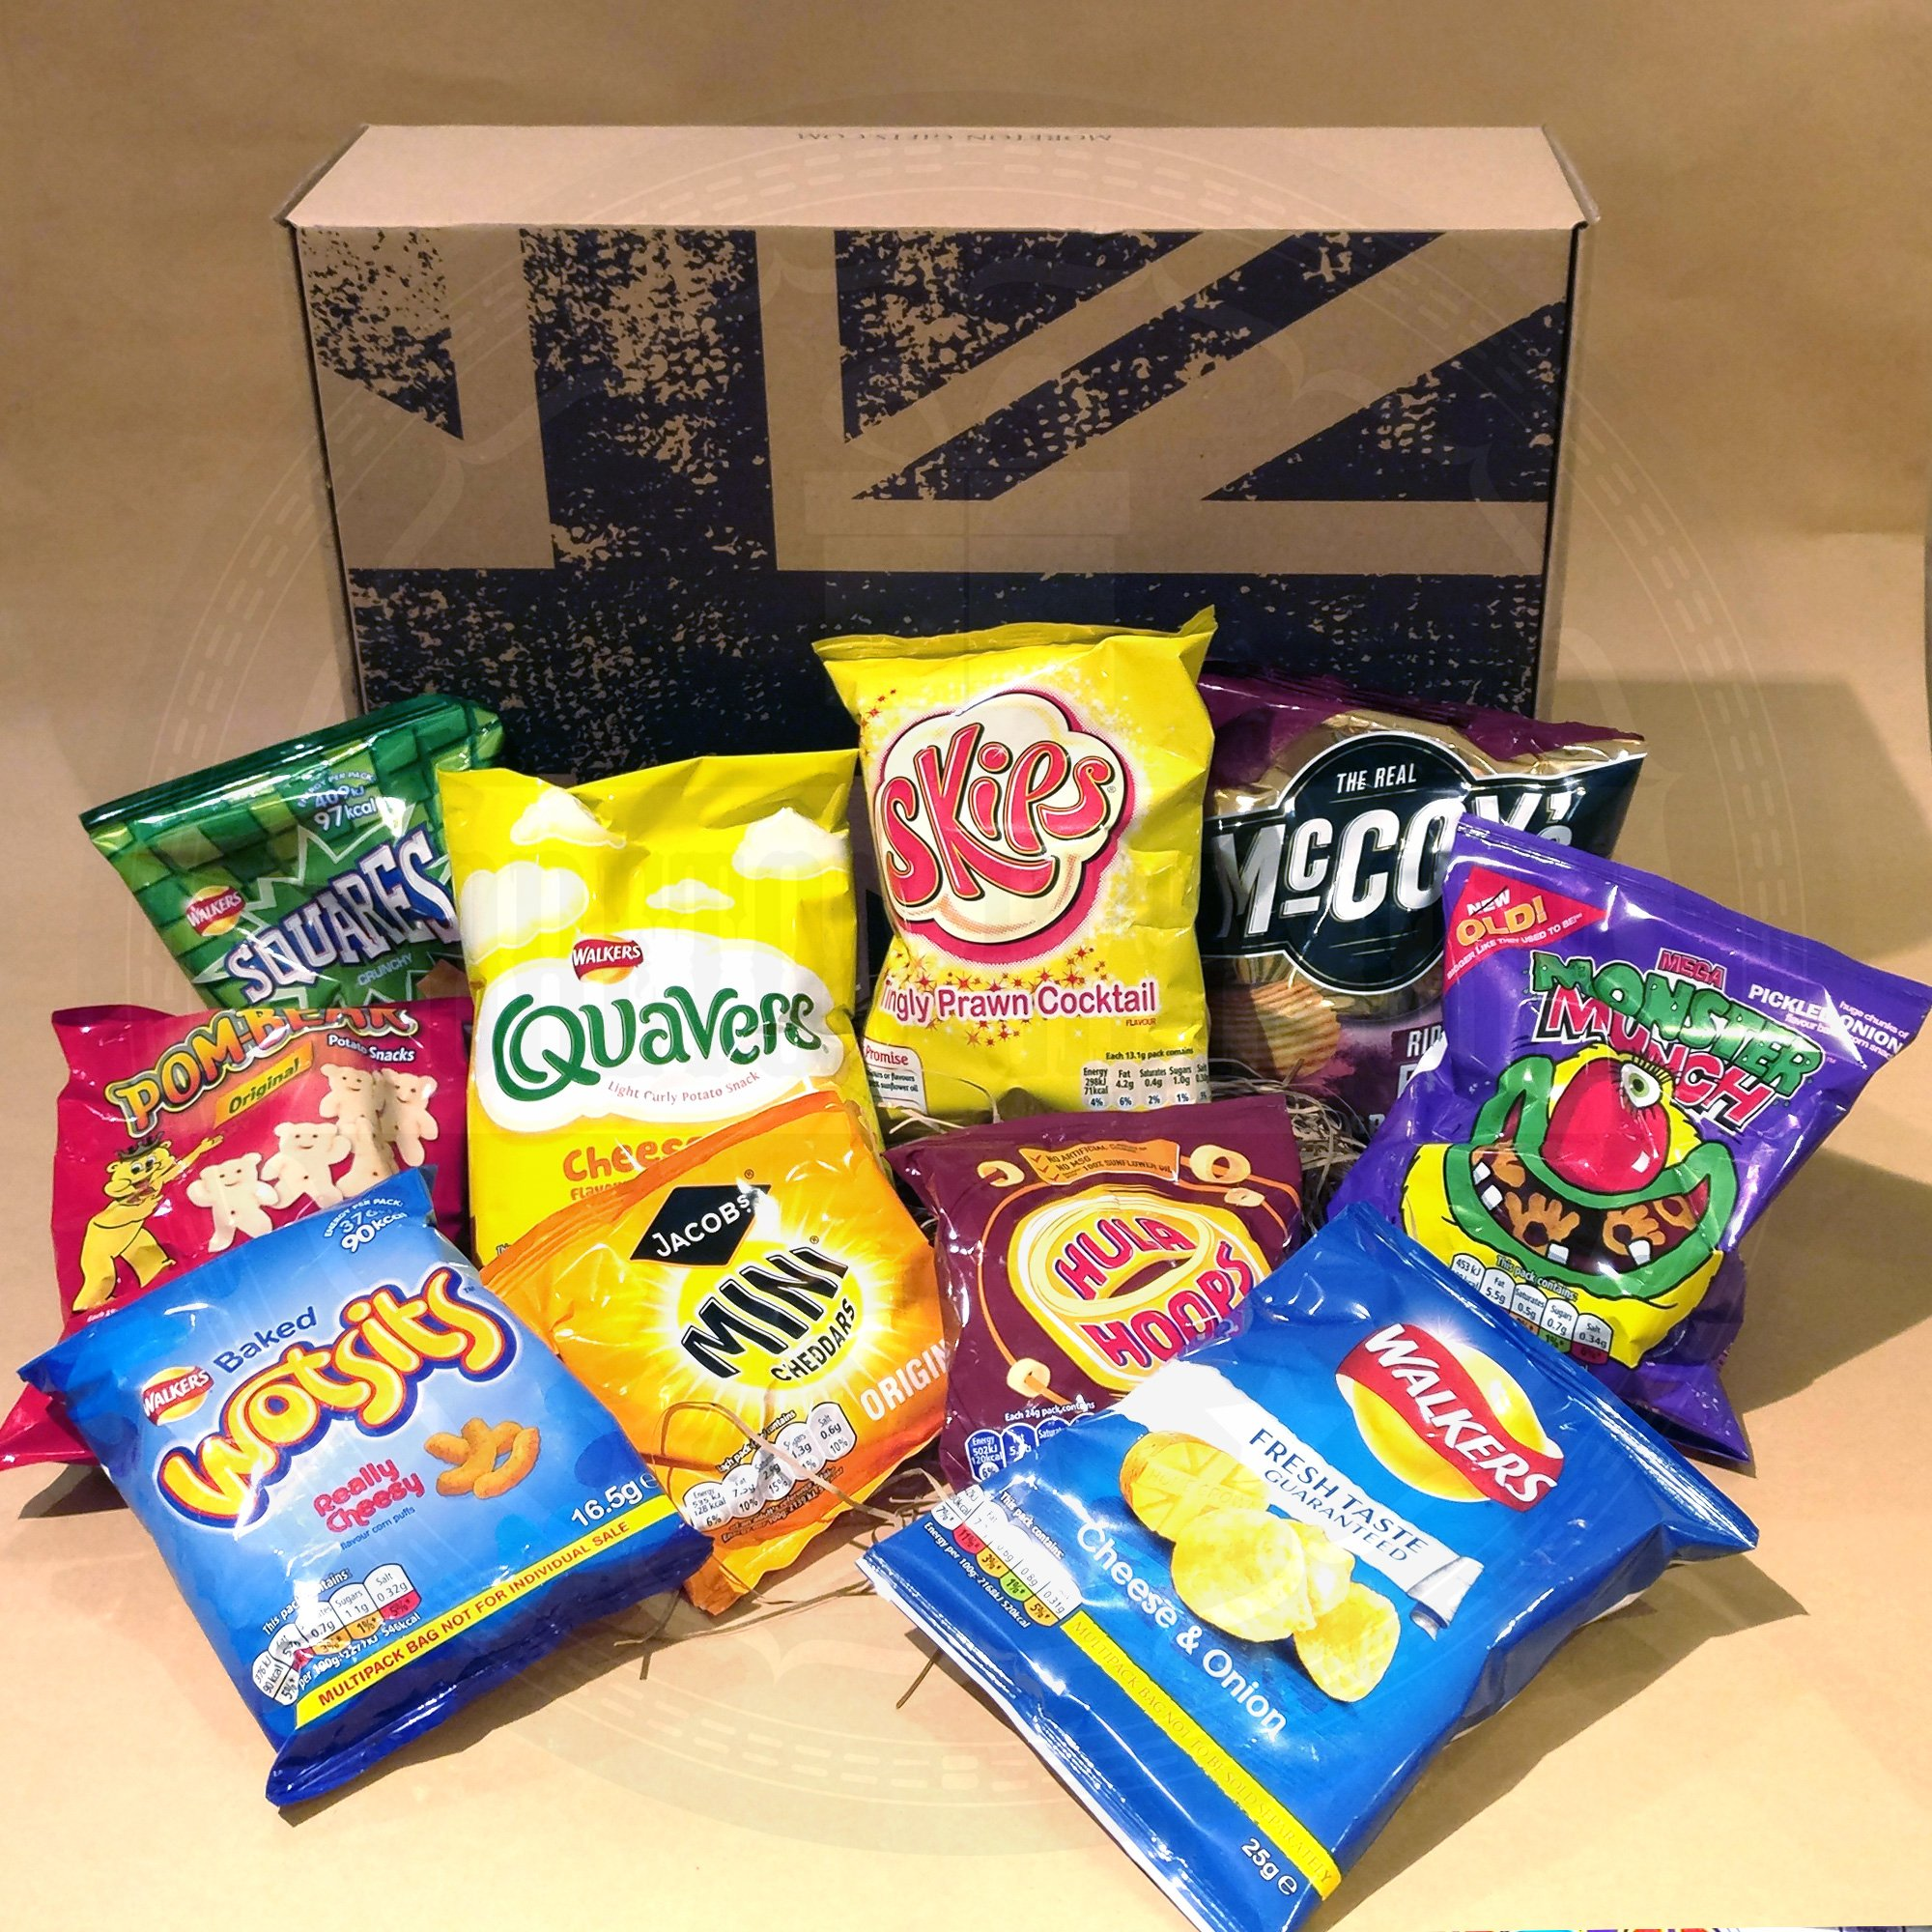 The British Favourite Crisps Collection Gift Box - Top 10 Best Selling UK Crisps/Chips - Selection Of Favourite Crisps - Walkers Squares, Cheese & Onion, Quavers, Wotsits, Monster Munch, Mccoys, Pom B